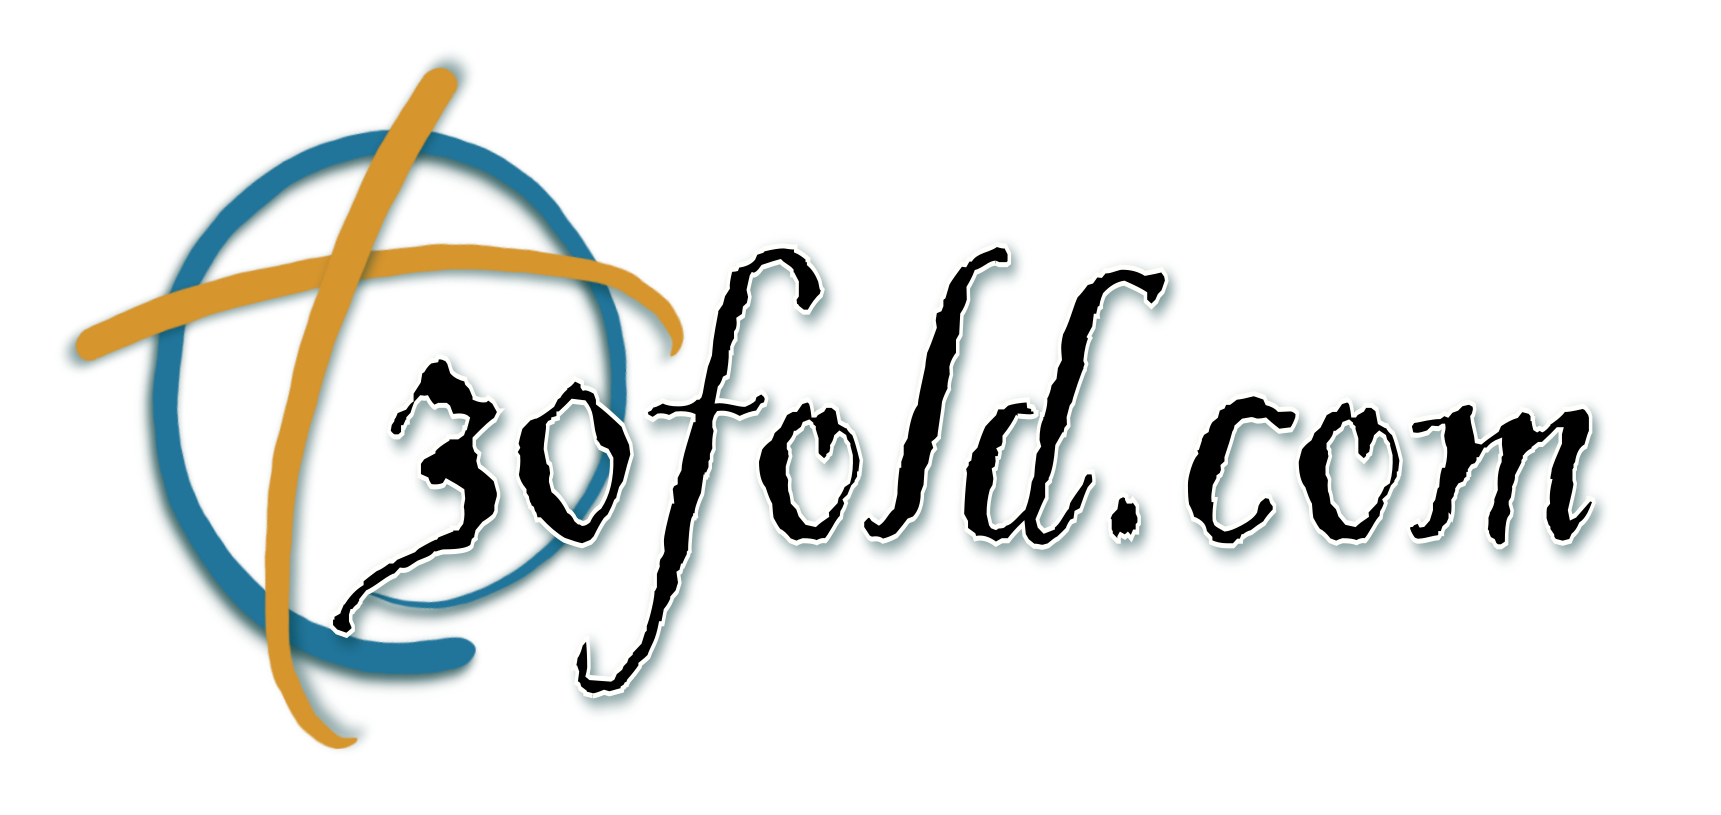 30fold is an Abundant Harvest